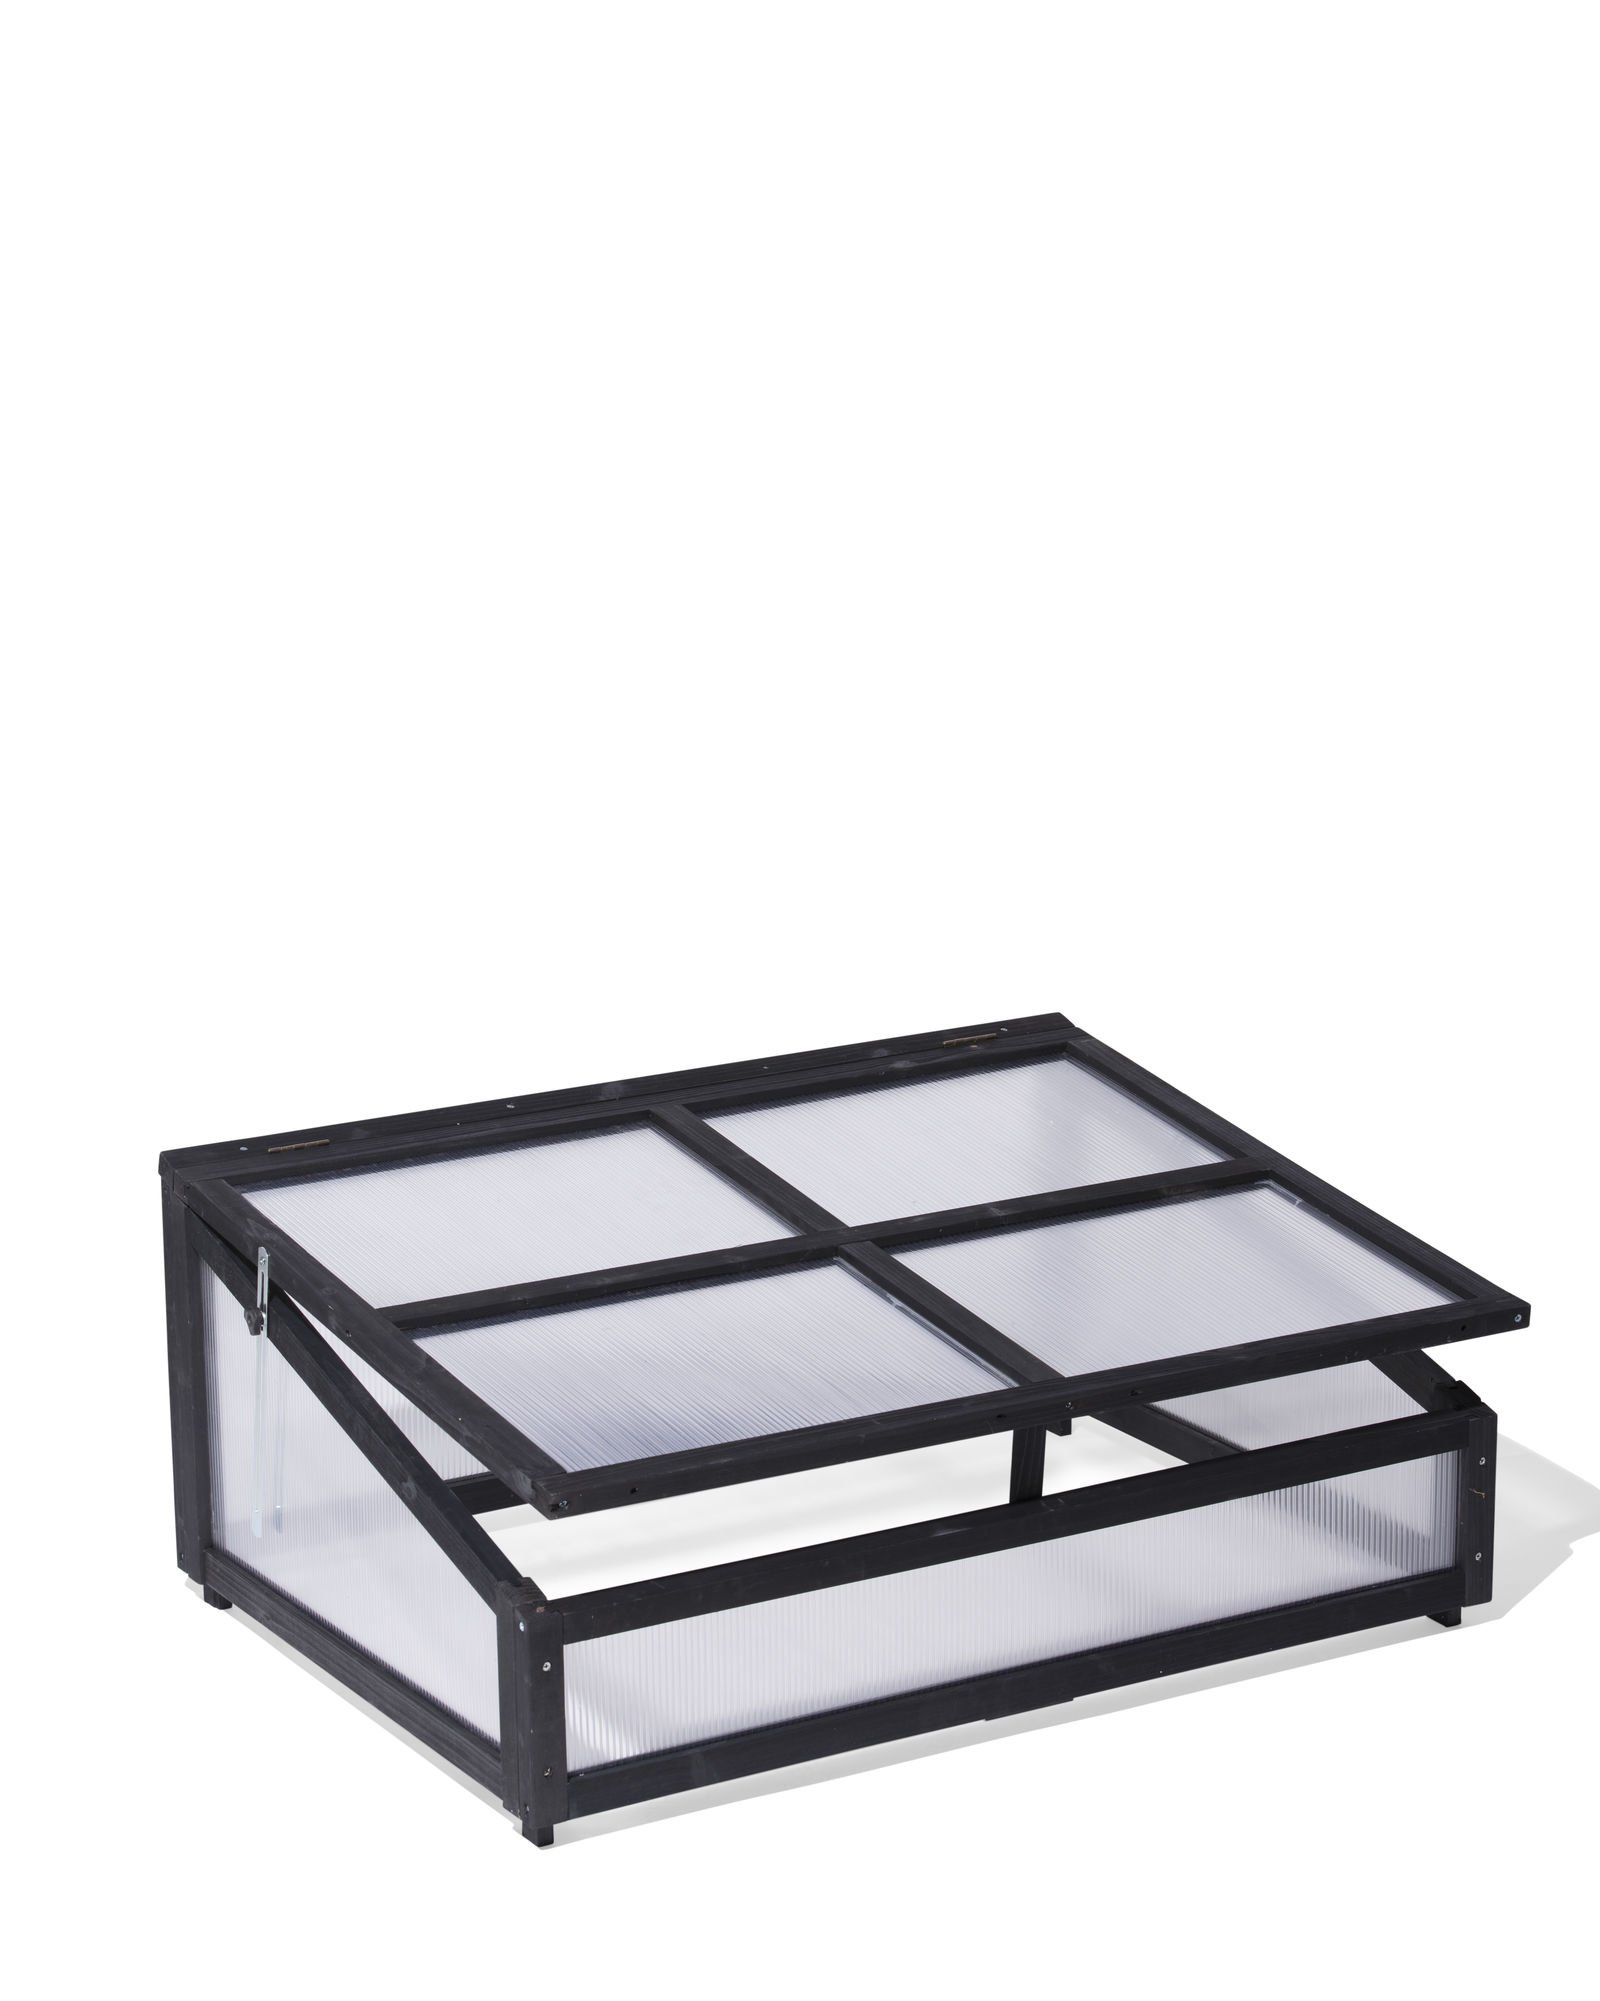 Cold Frame For Compact VegTrug8482;